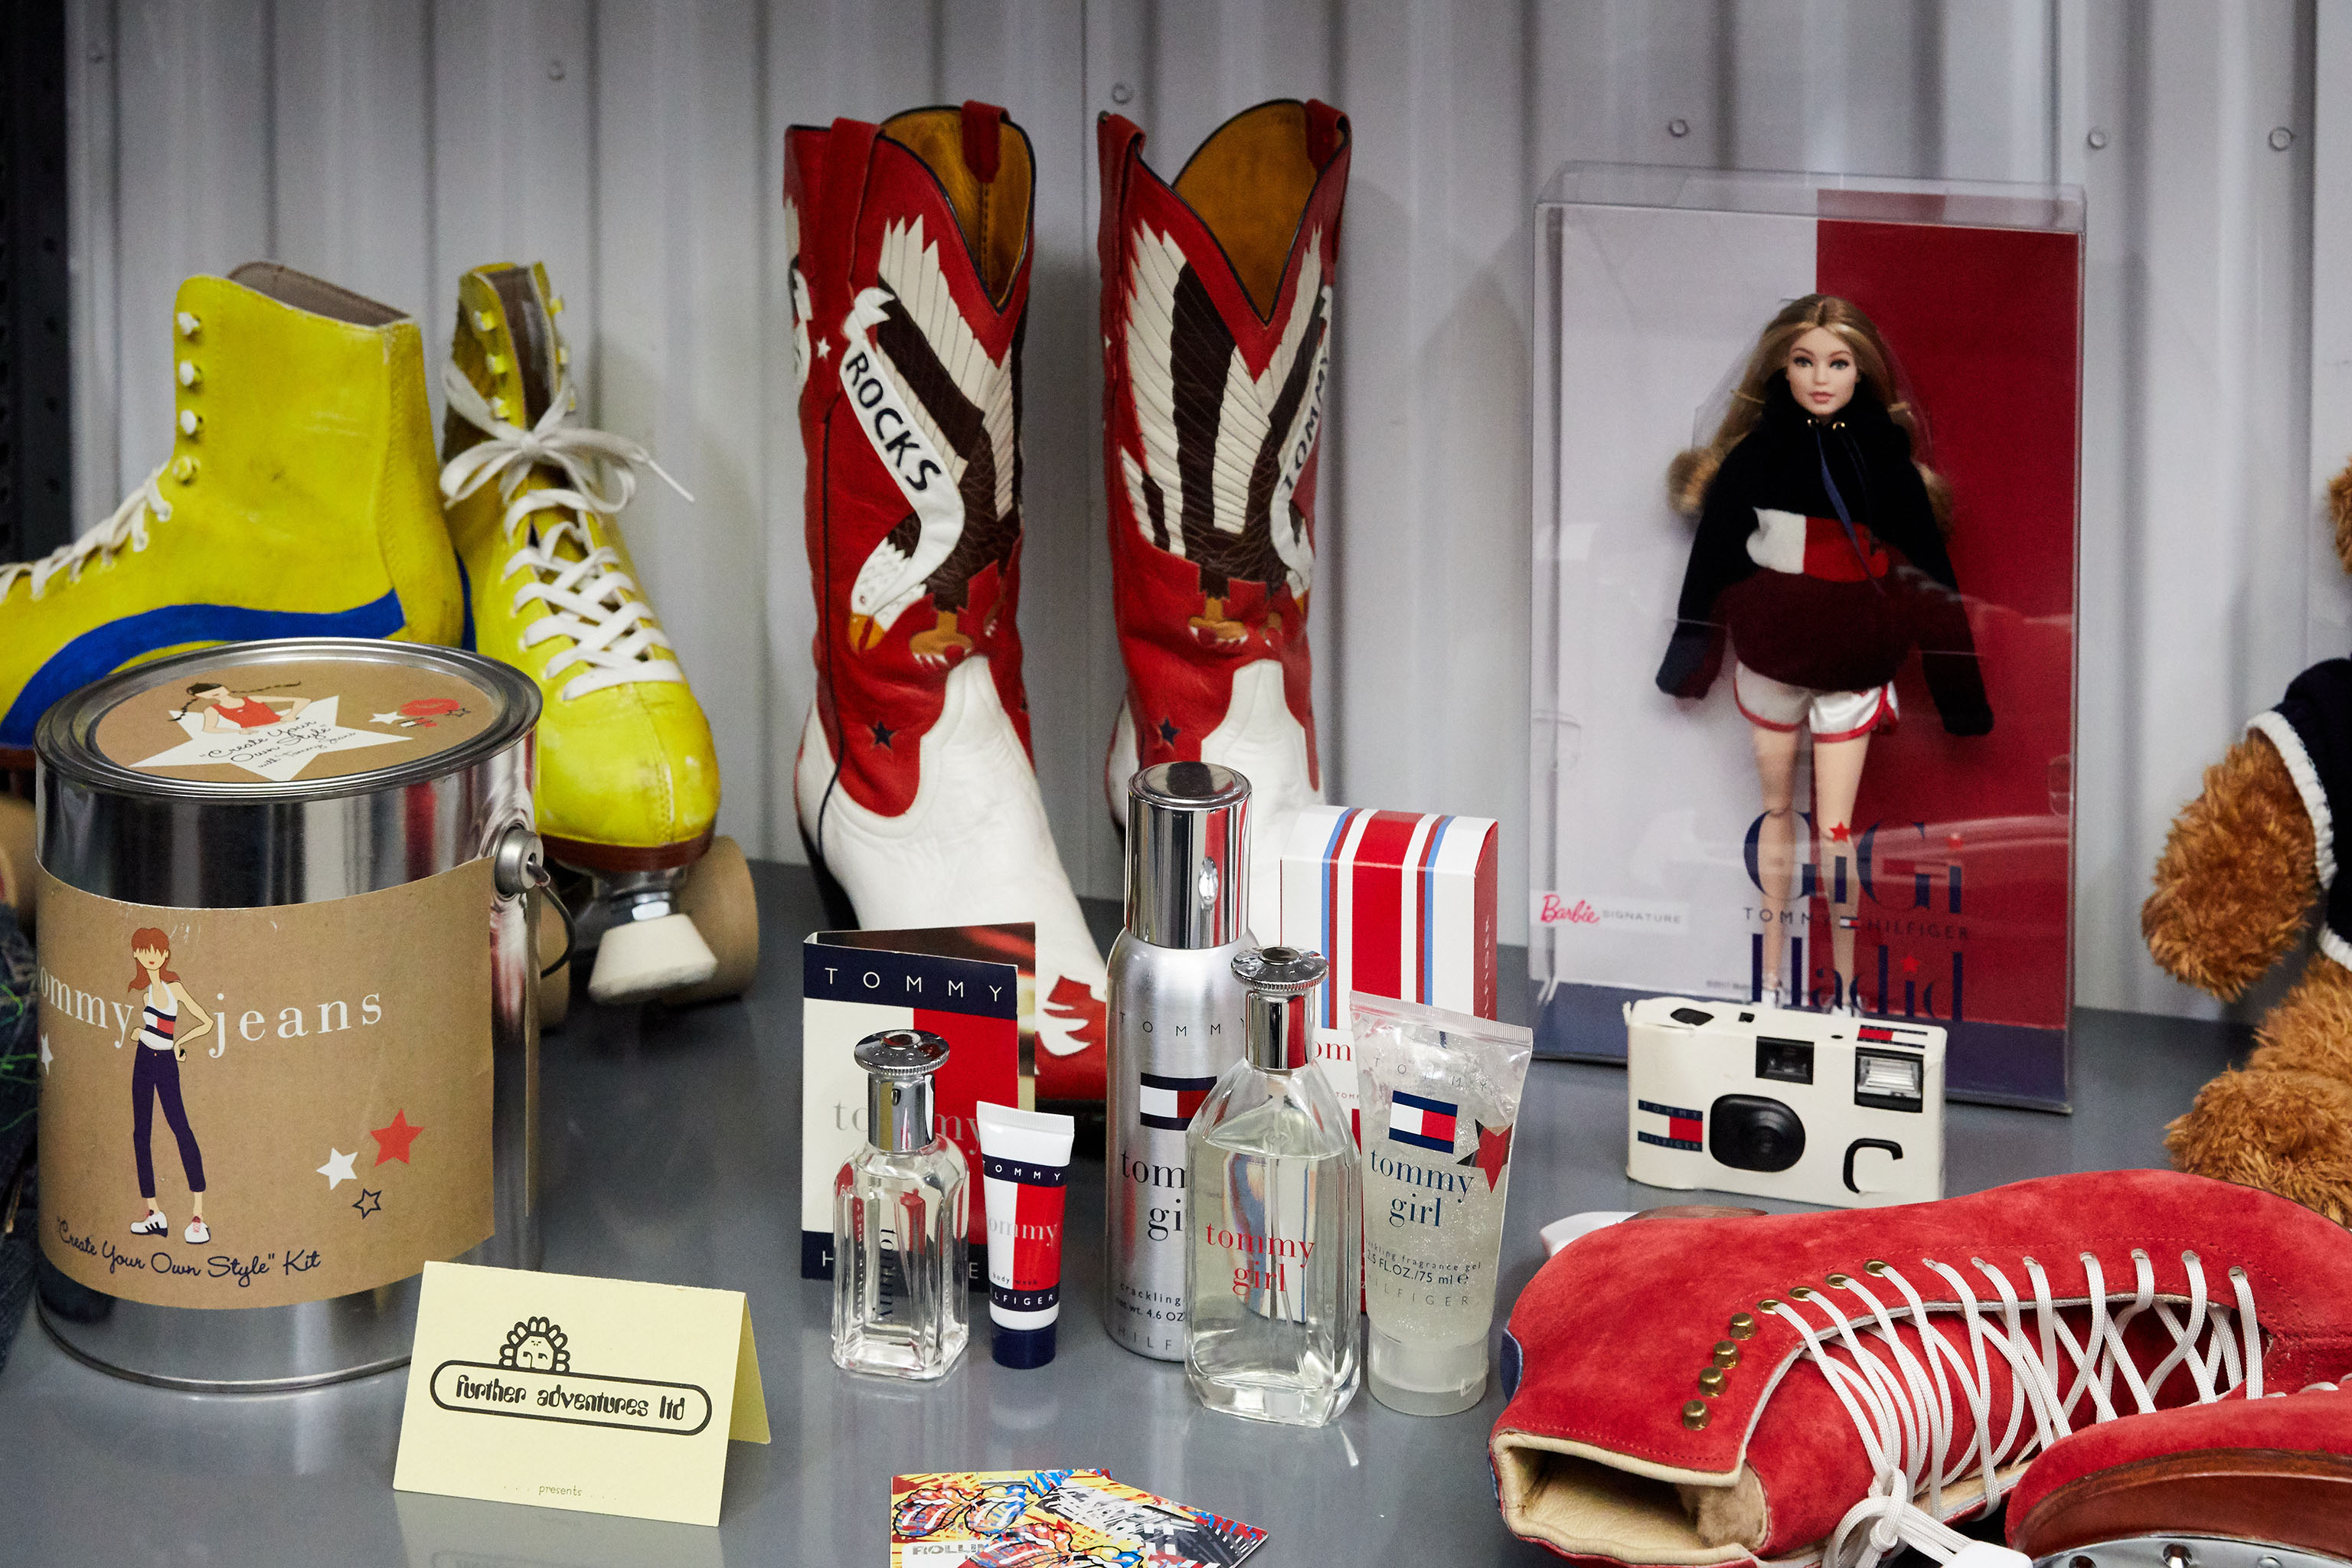 Various Tommy Hilfiger collectibles including the cowboy boots worn by Naomi Campbell on the runway.